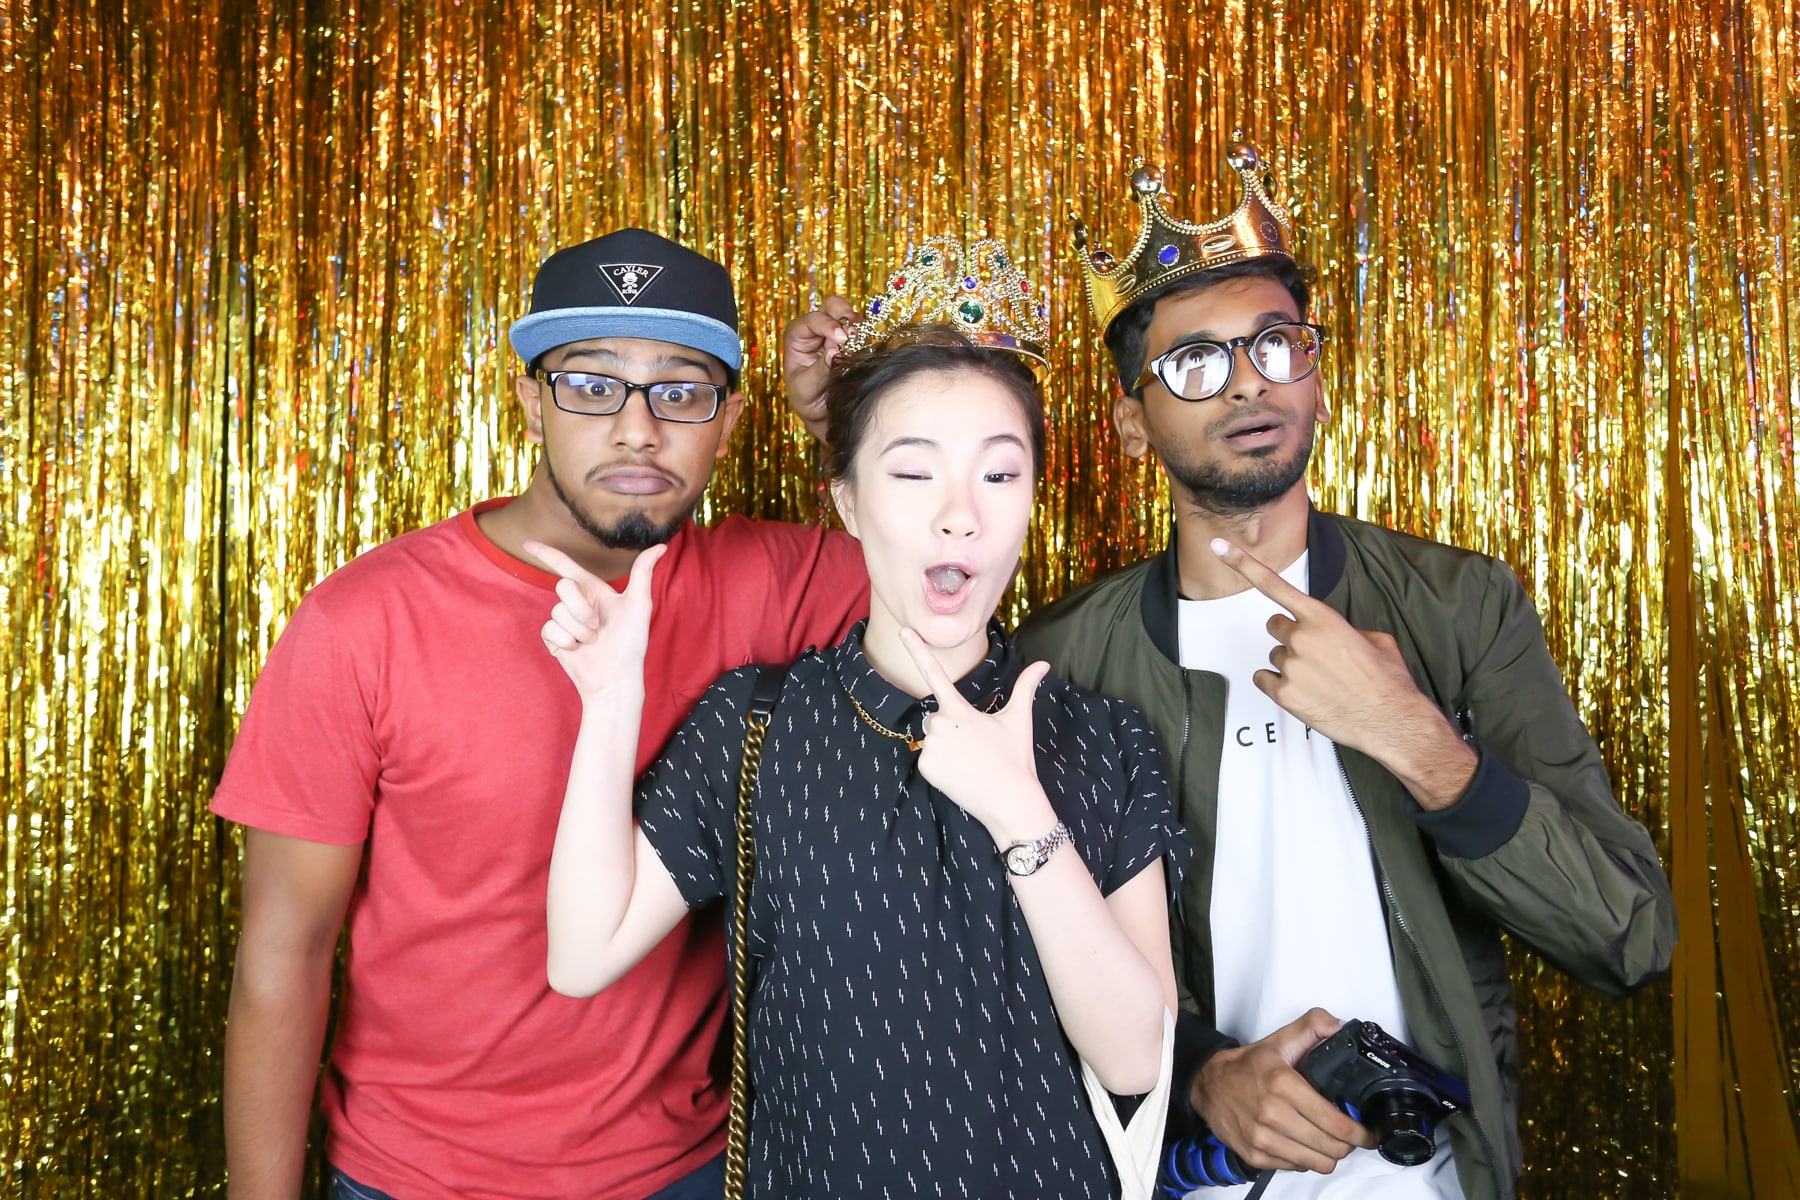 Sushivid+crunch+tagbooth+74